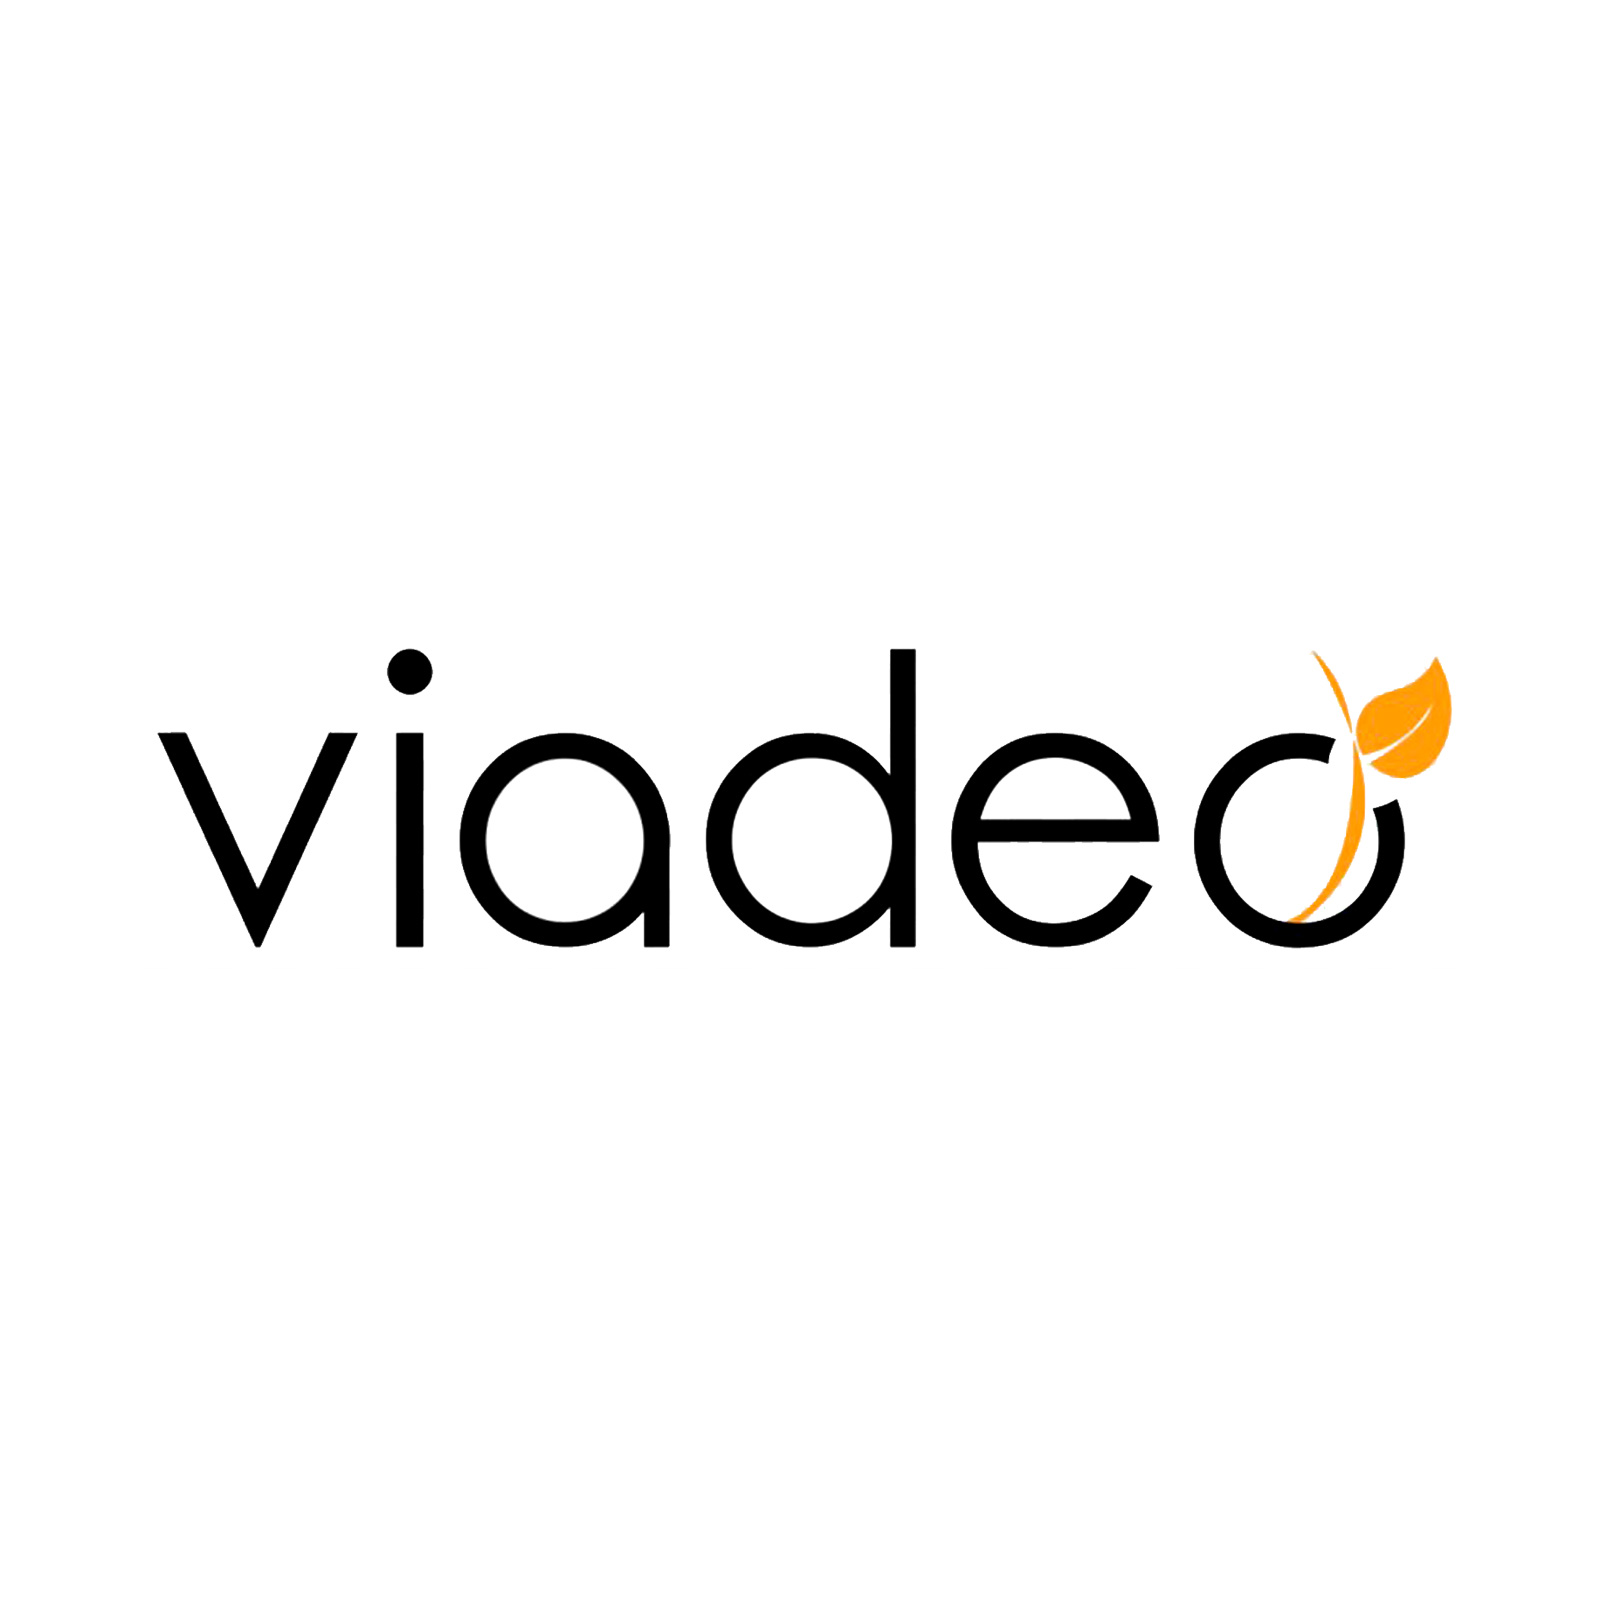 Viadeo is an online business-based social networking site that helps business people, mostly those in Europe, connect with one another. It is available in about different languages.